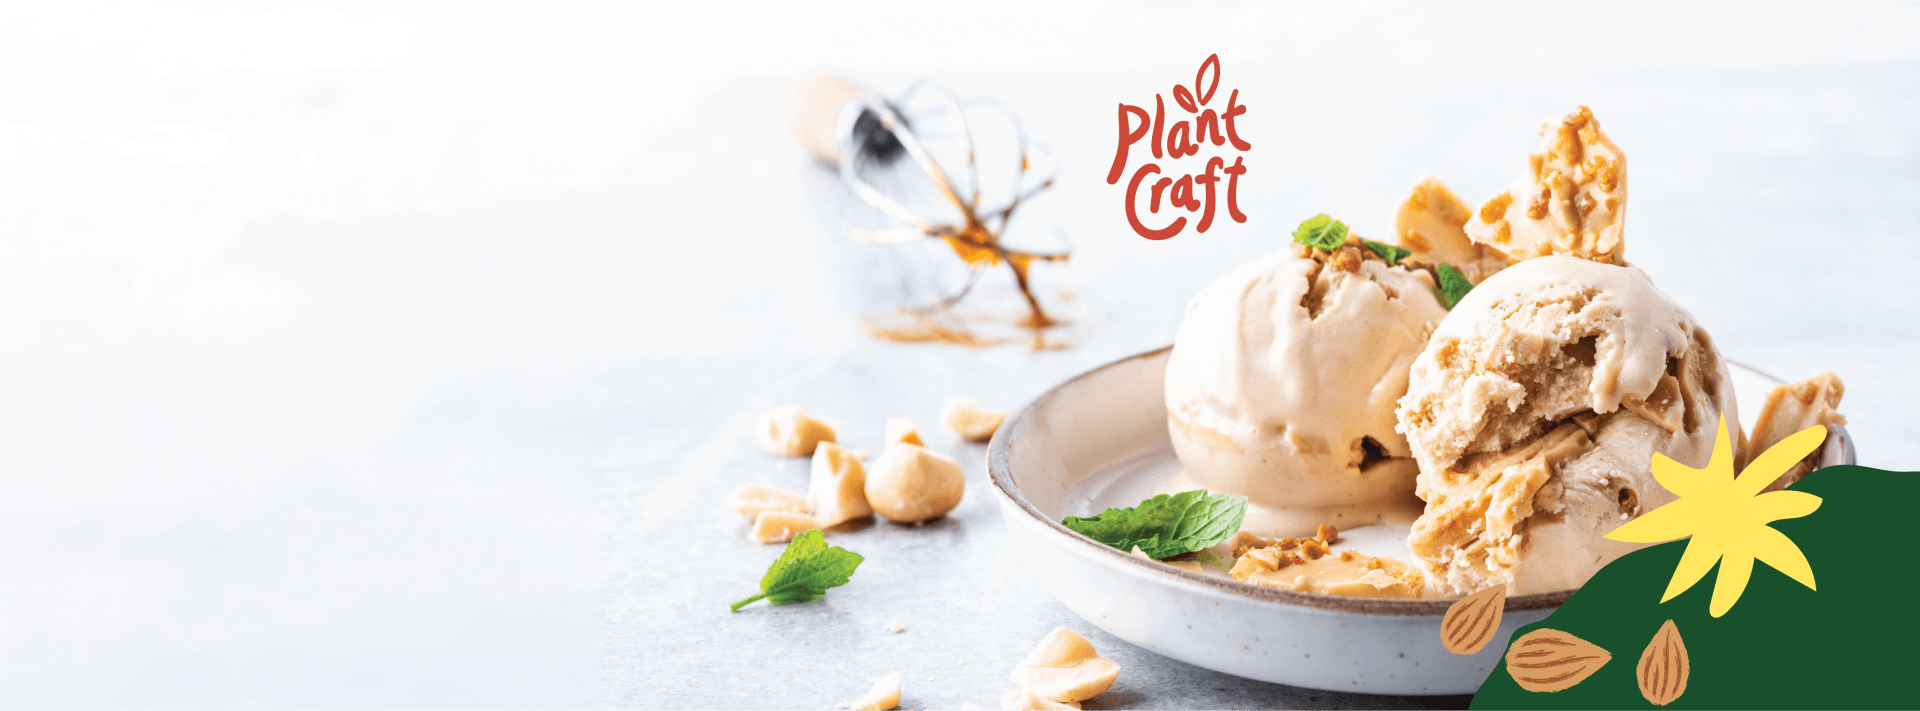 Plant Craft Ice cream - Vegan